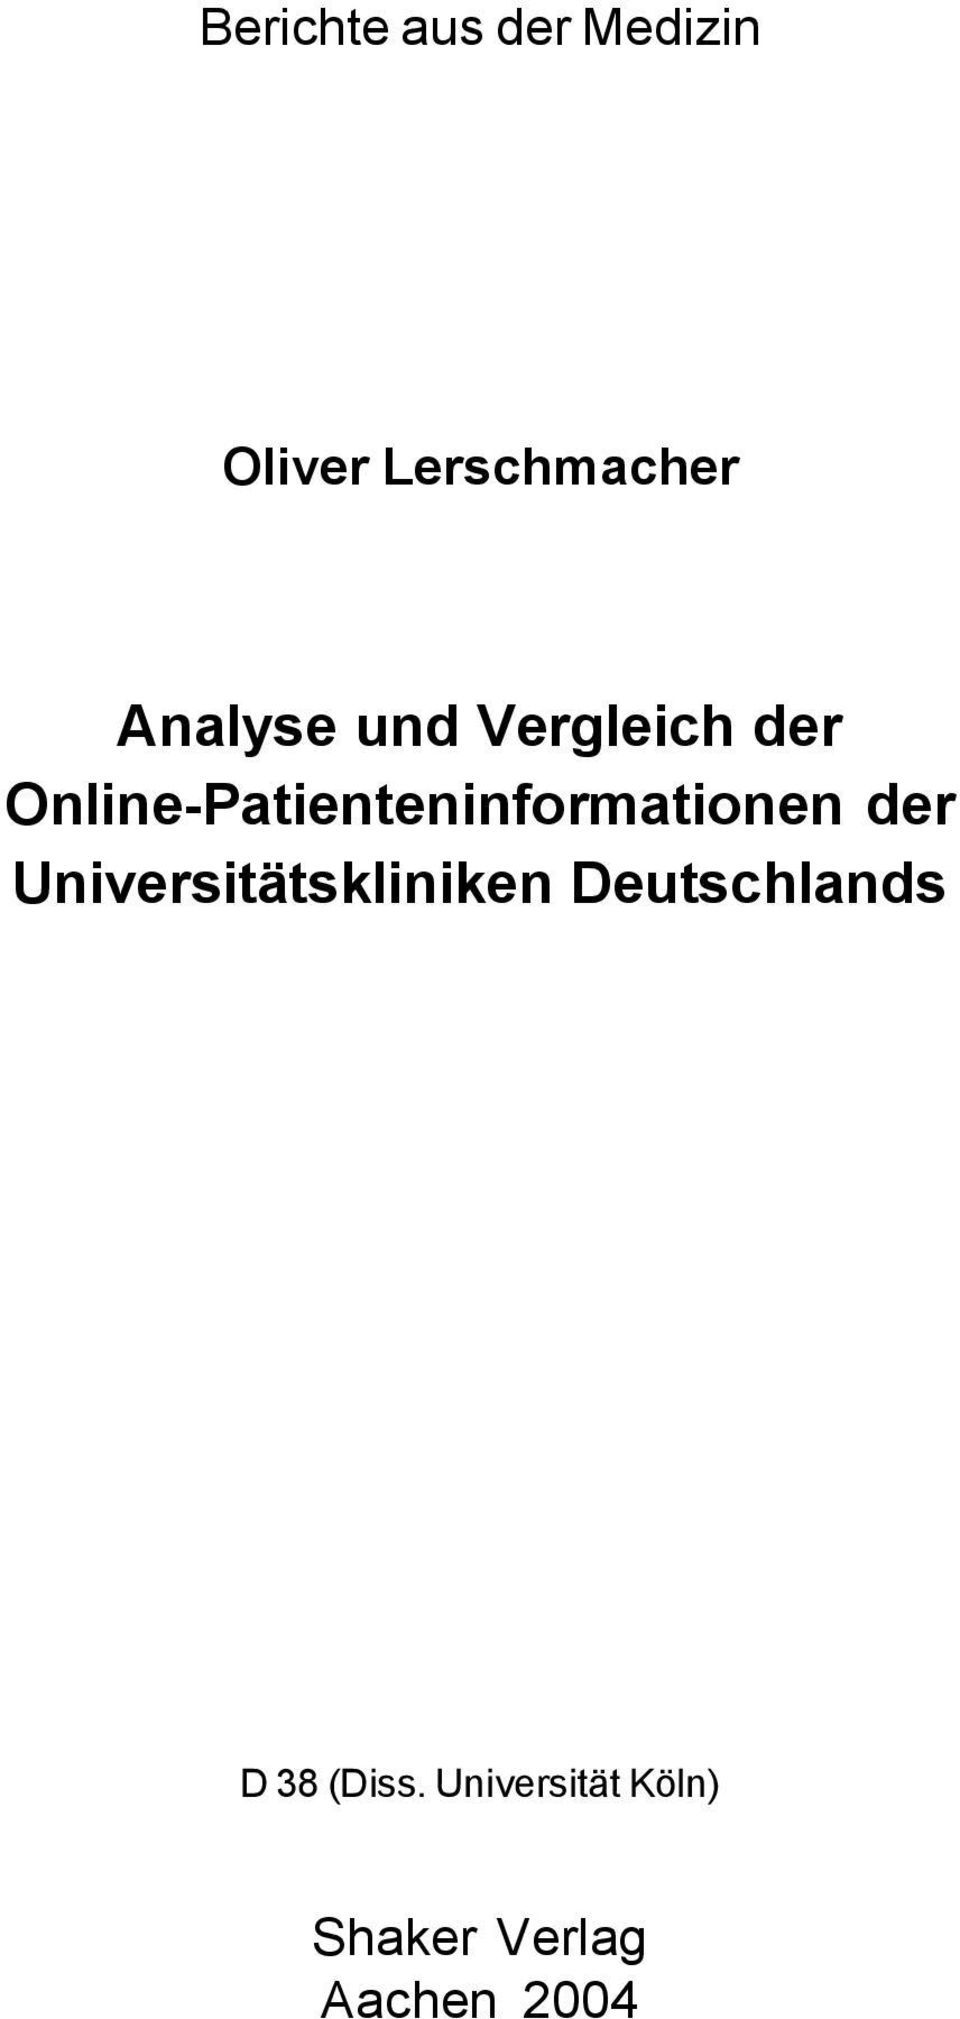 Online-Patienteninformationen der